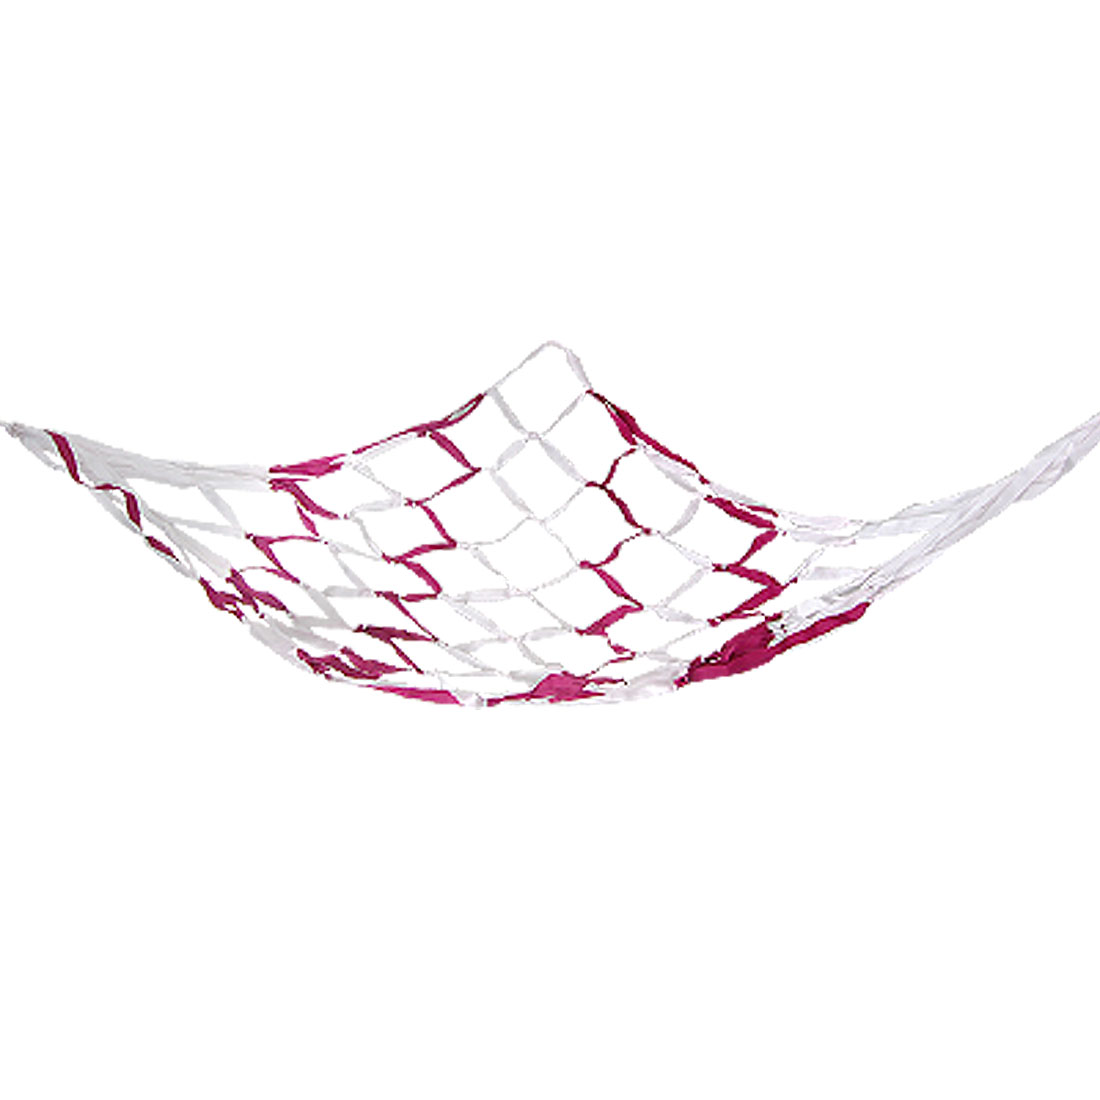 Backyard Park Home Handmade Knot Sleeping Bed Hammock